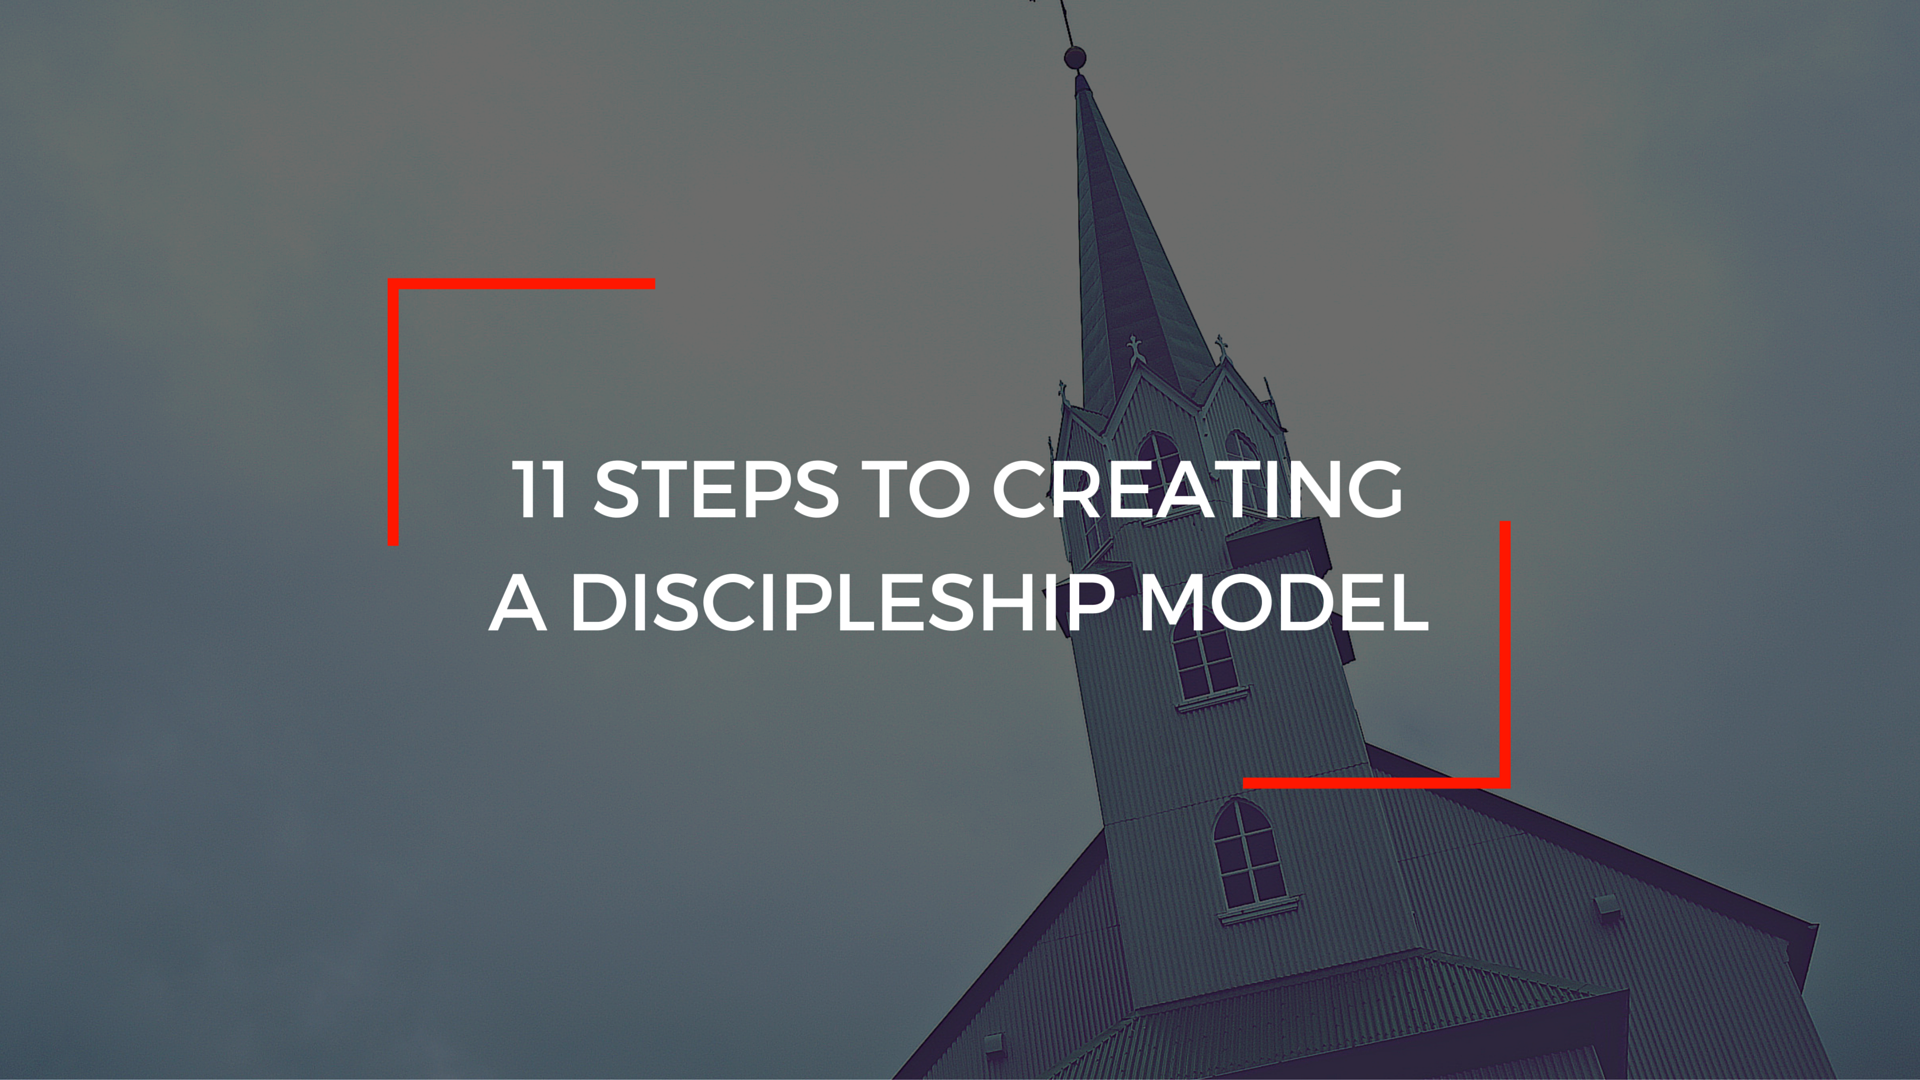 11 Steps to Creating a Discipleship Model